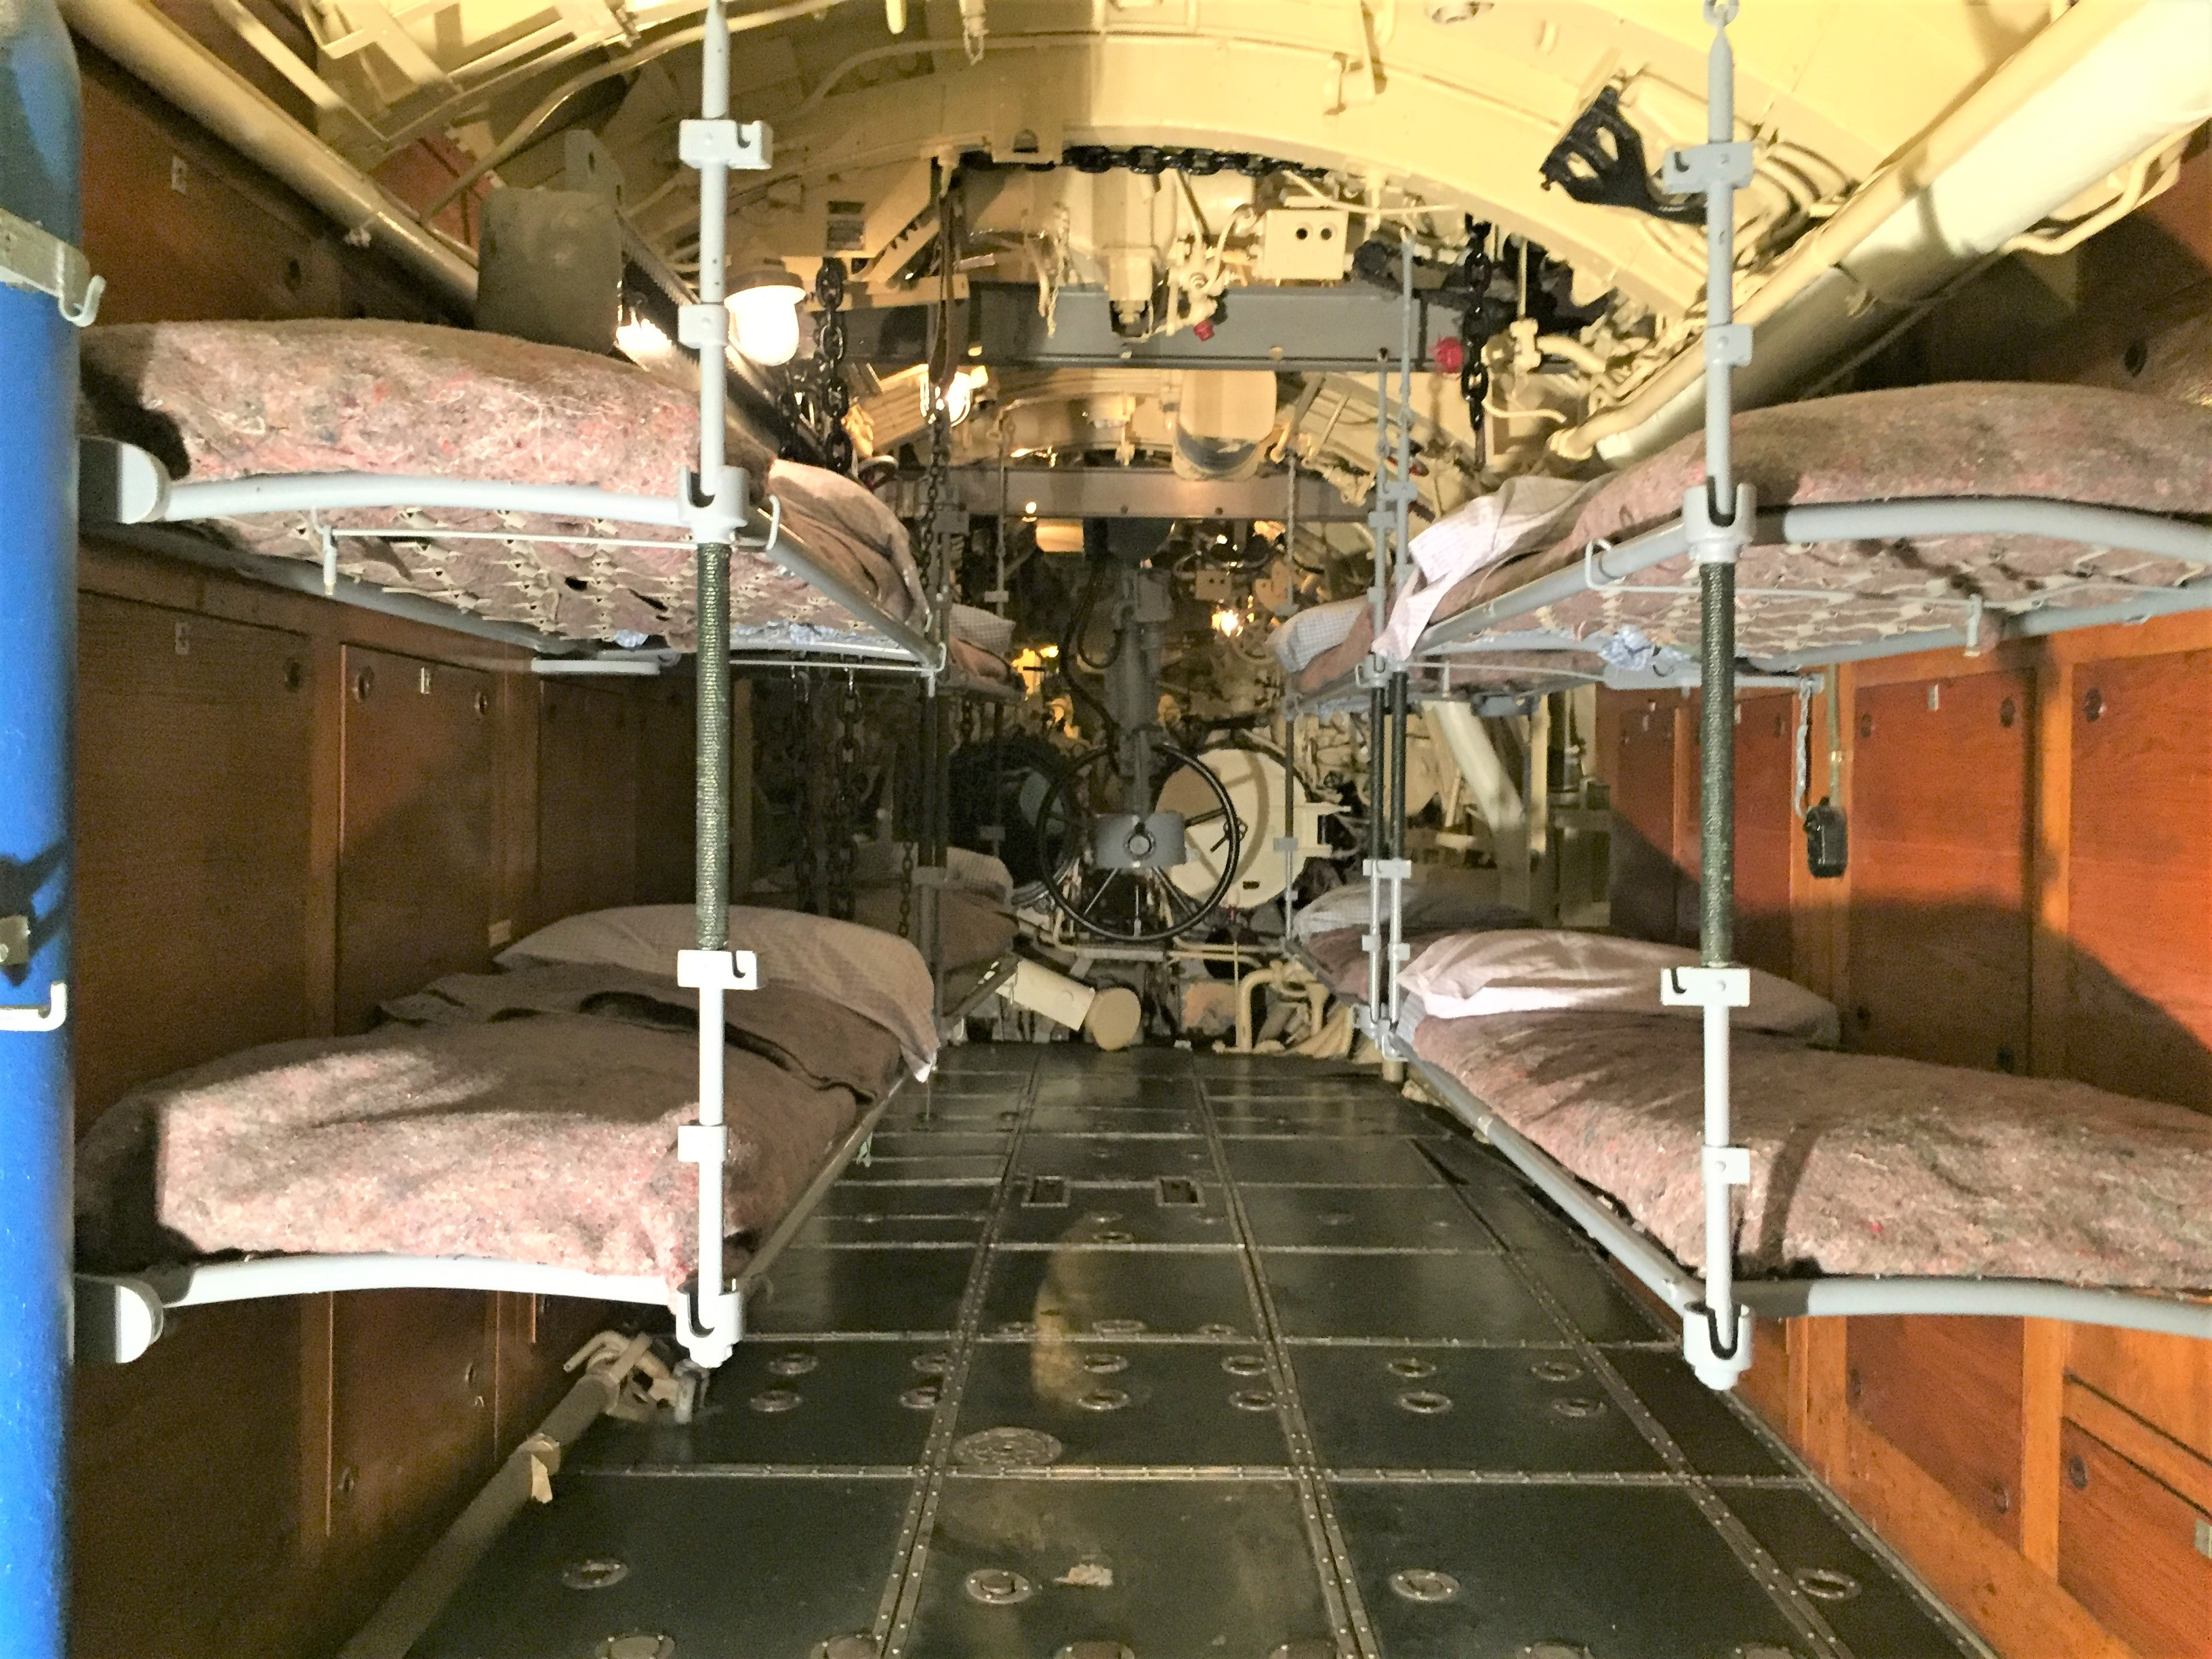 Aft torpedo room in U-505, rudder controls in center of picture, adjusted by Captain Gallery allowing U-505 to be saved, Chicago Museum of Science and Industry (Photo: Sarah Sundin, September 2016).